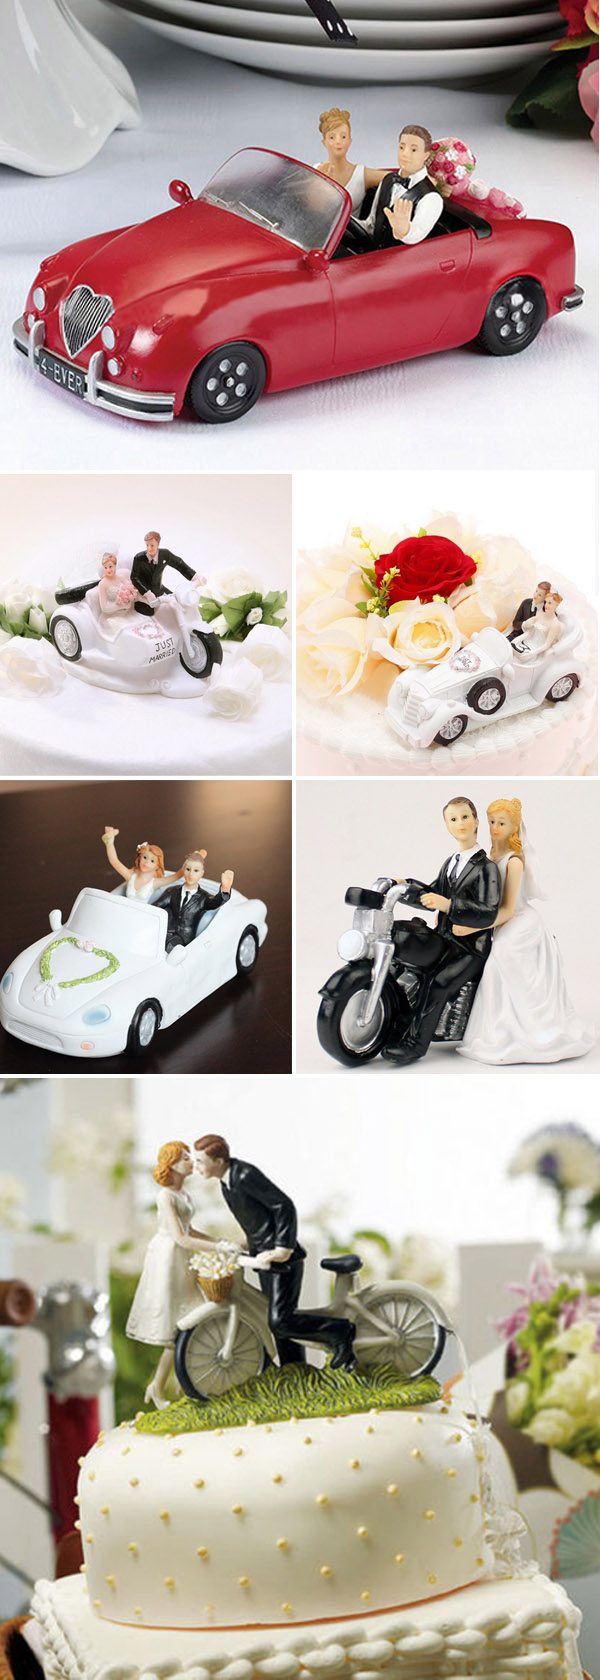 Different and Funny Wedding Gifts and Cake Toppers ...